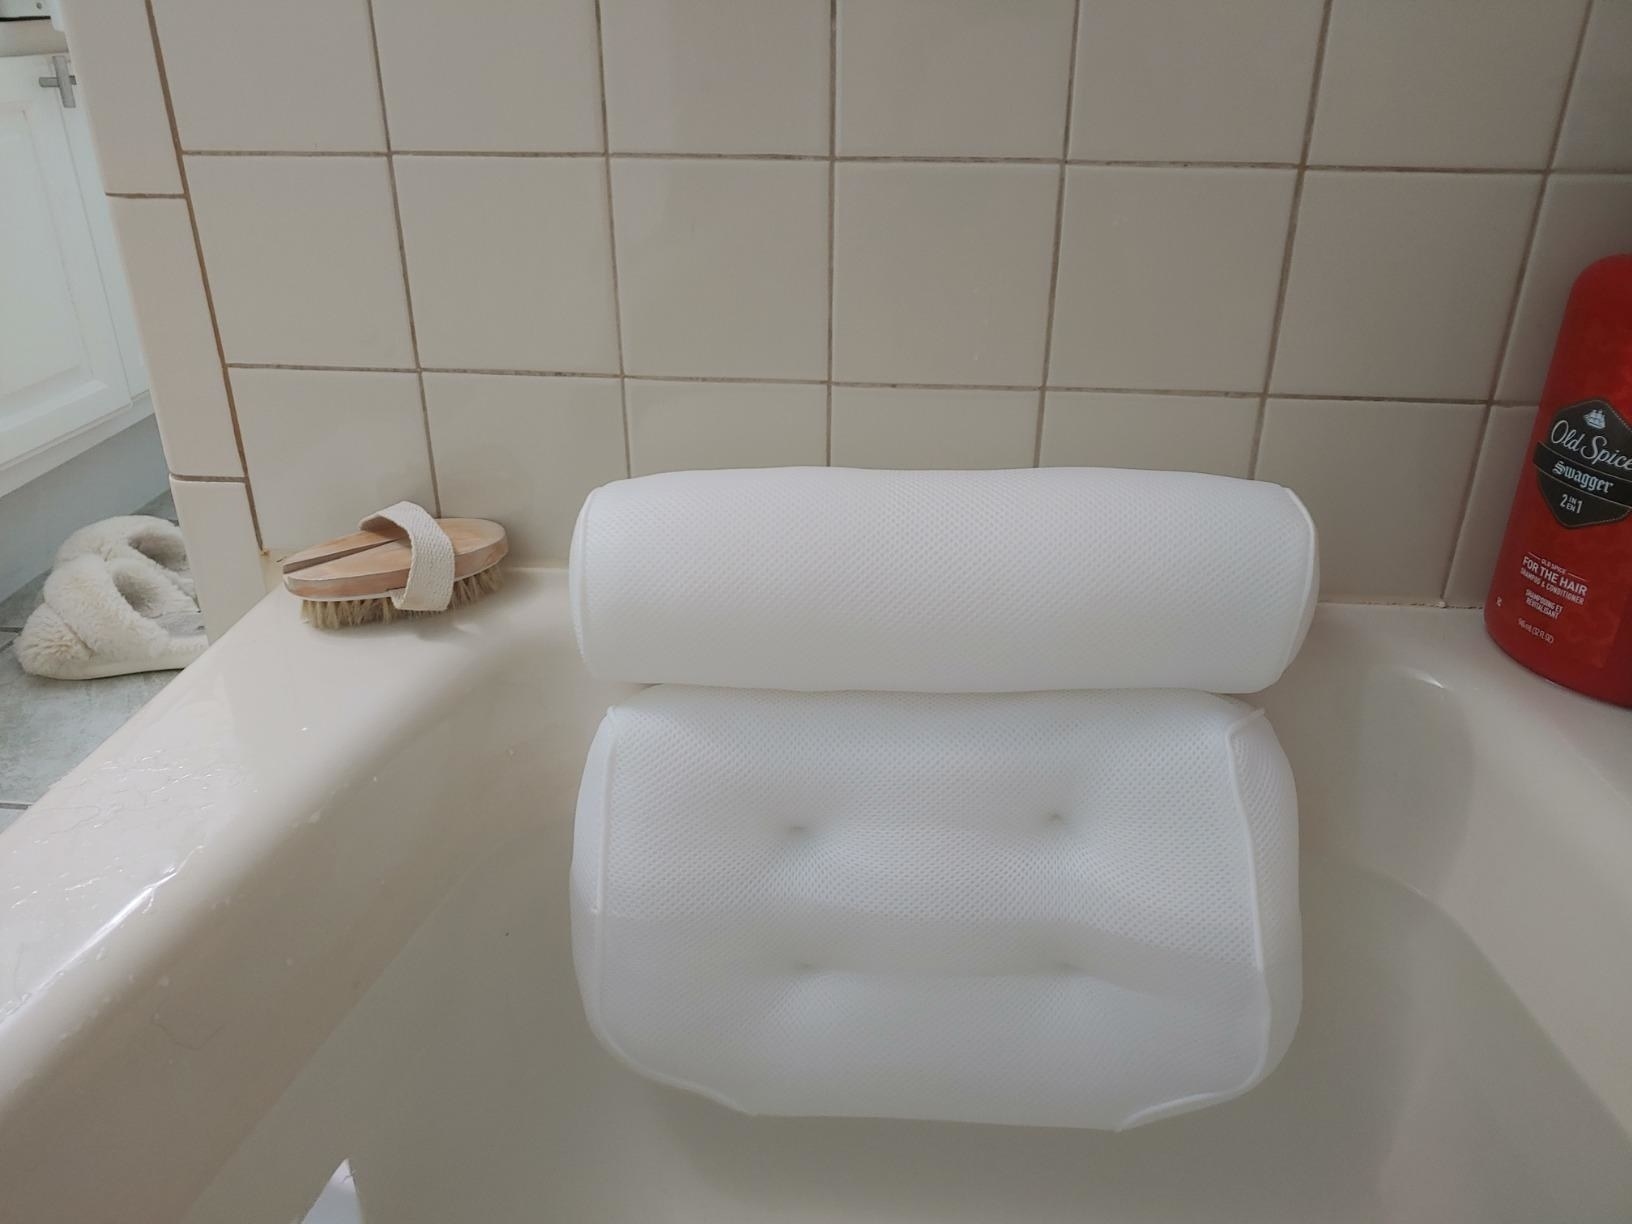 The pillow in a filled bathtub